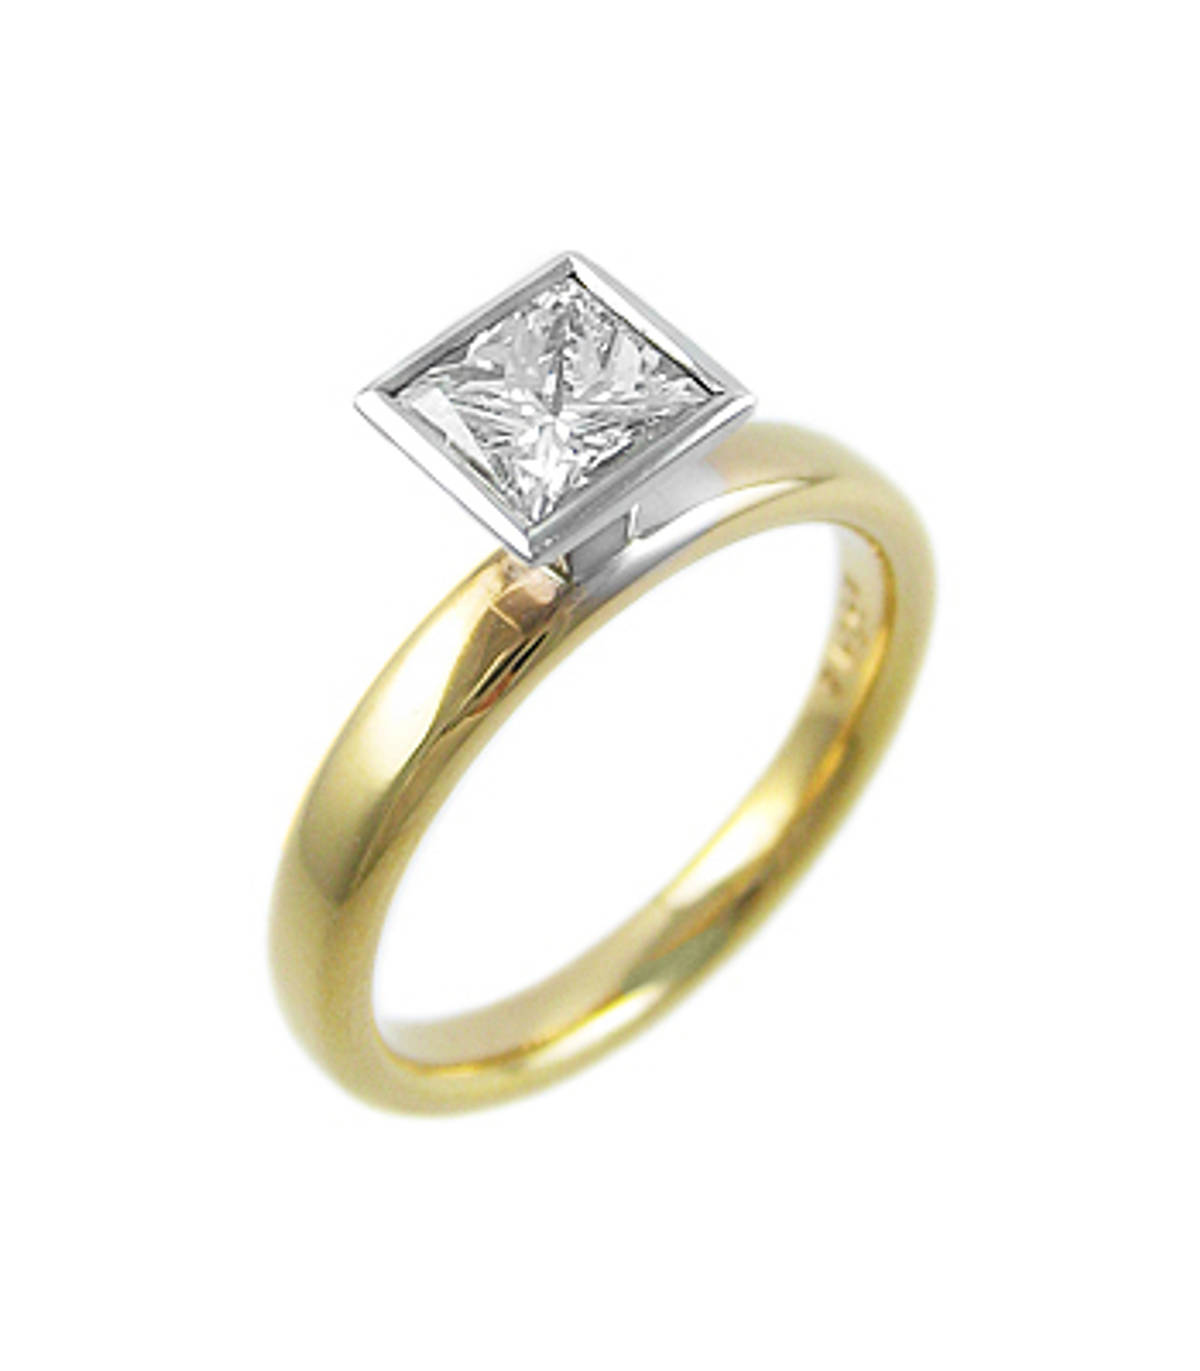 DR69214Princess cut diamond rubover set solitaire ringPictured item: 0.56cts diamond set in 18k red and white gold